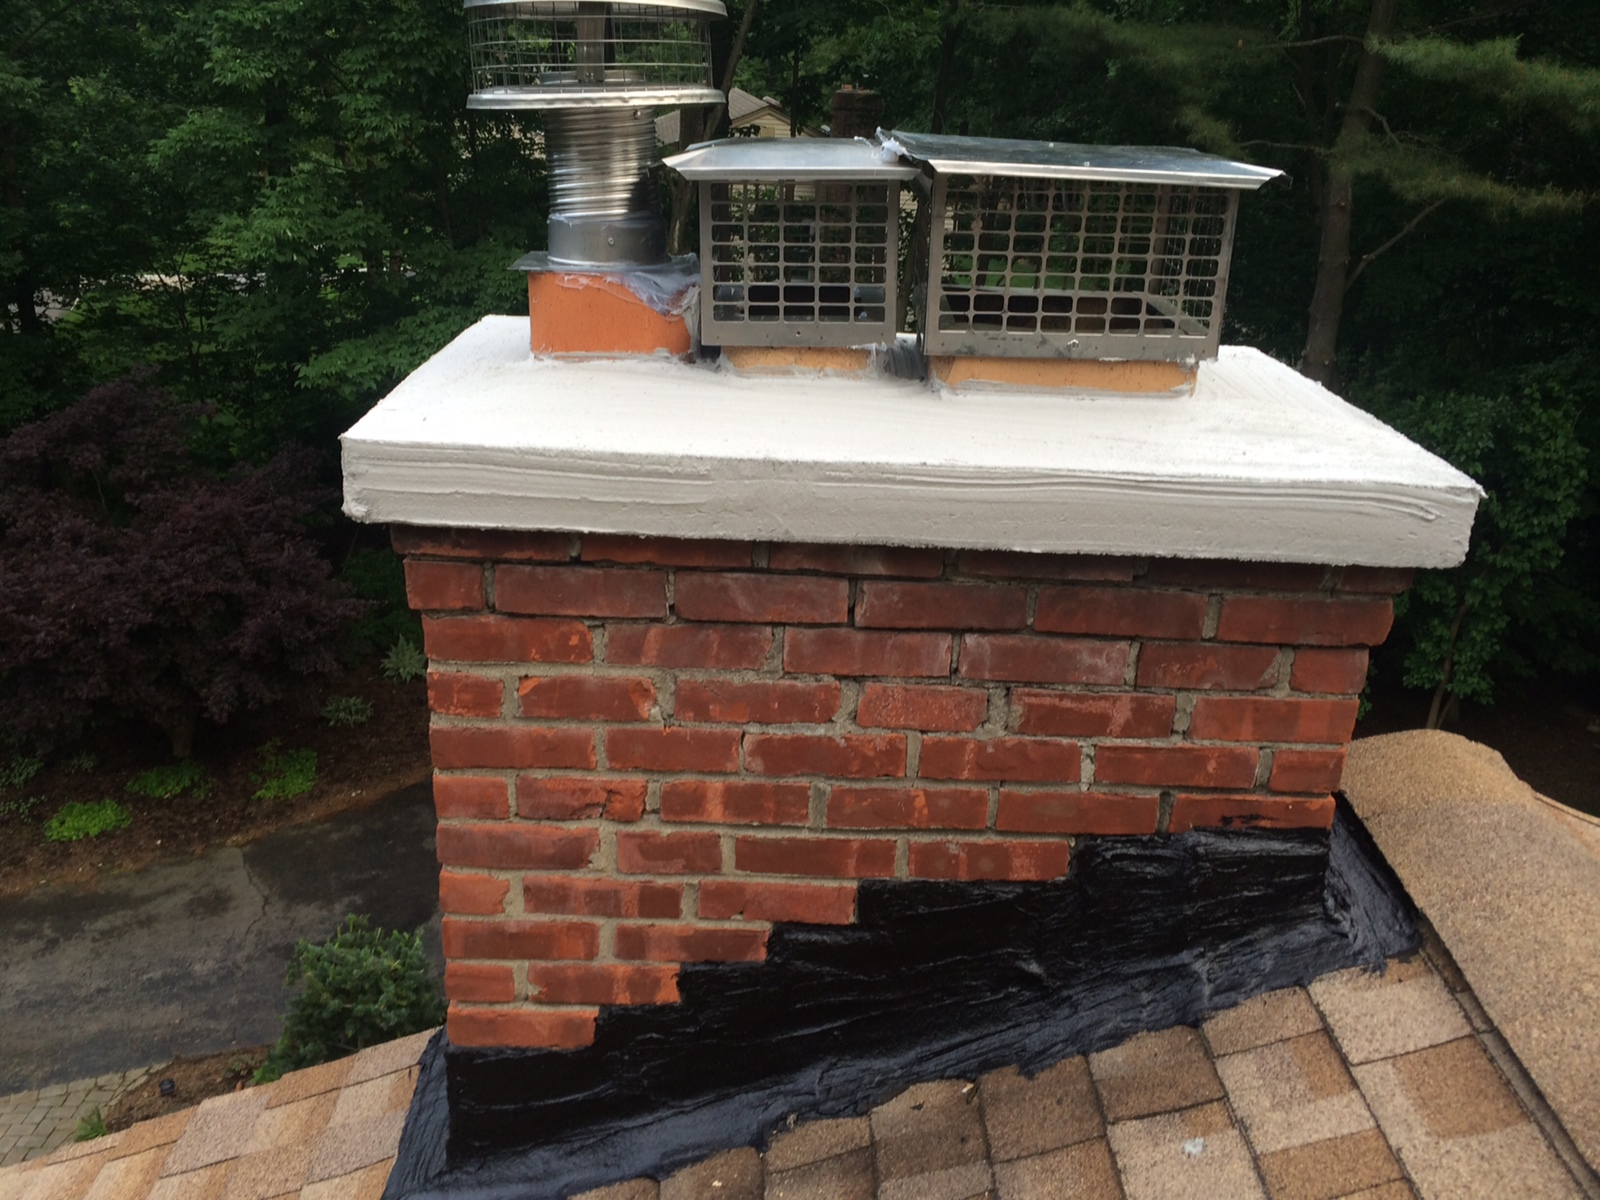 Chimney Cleaning Deer Park Ny